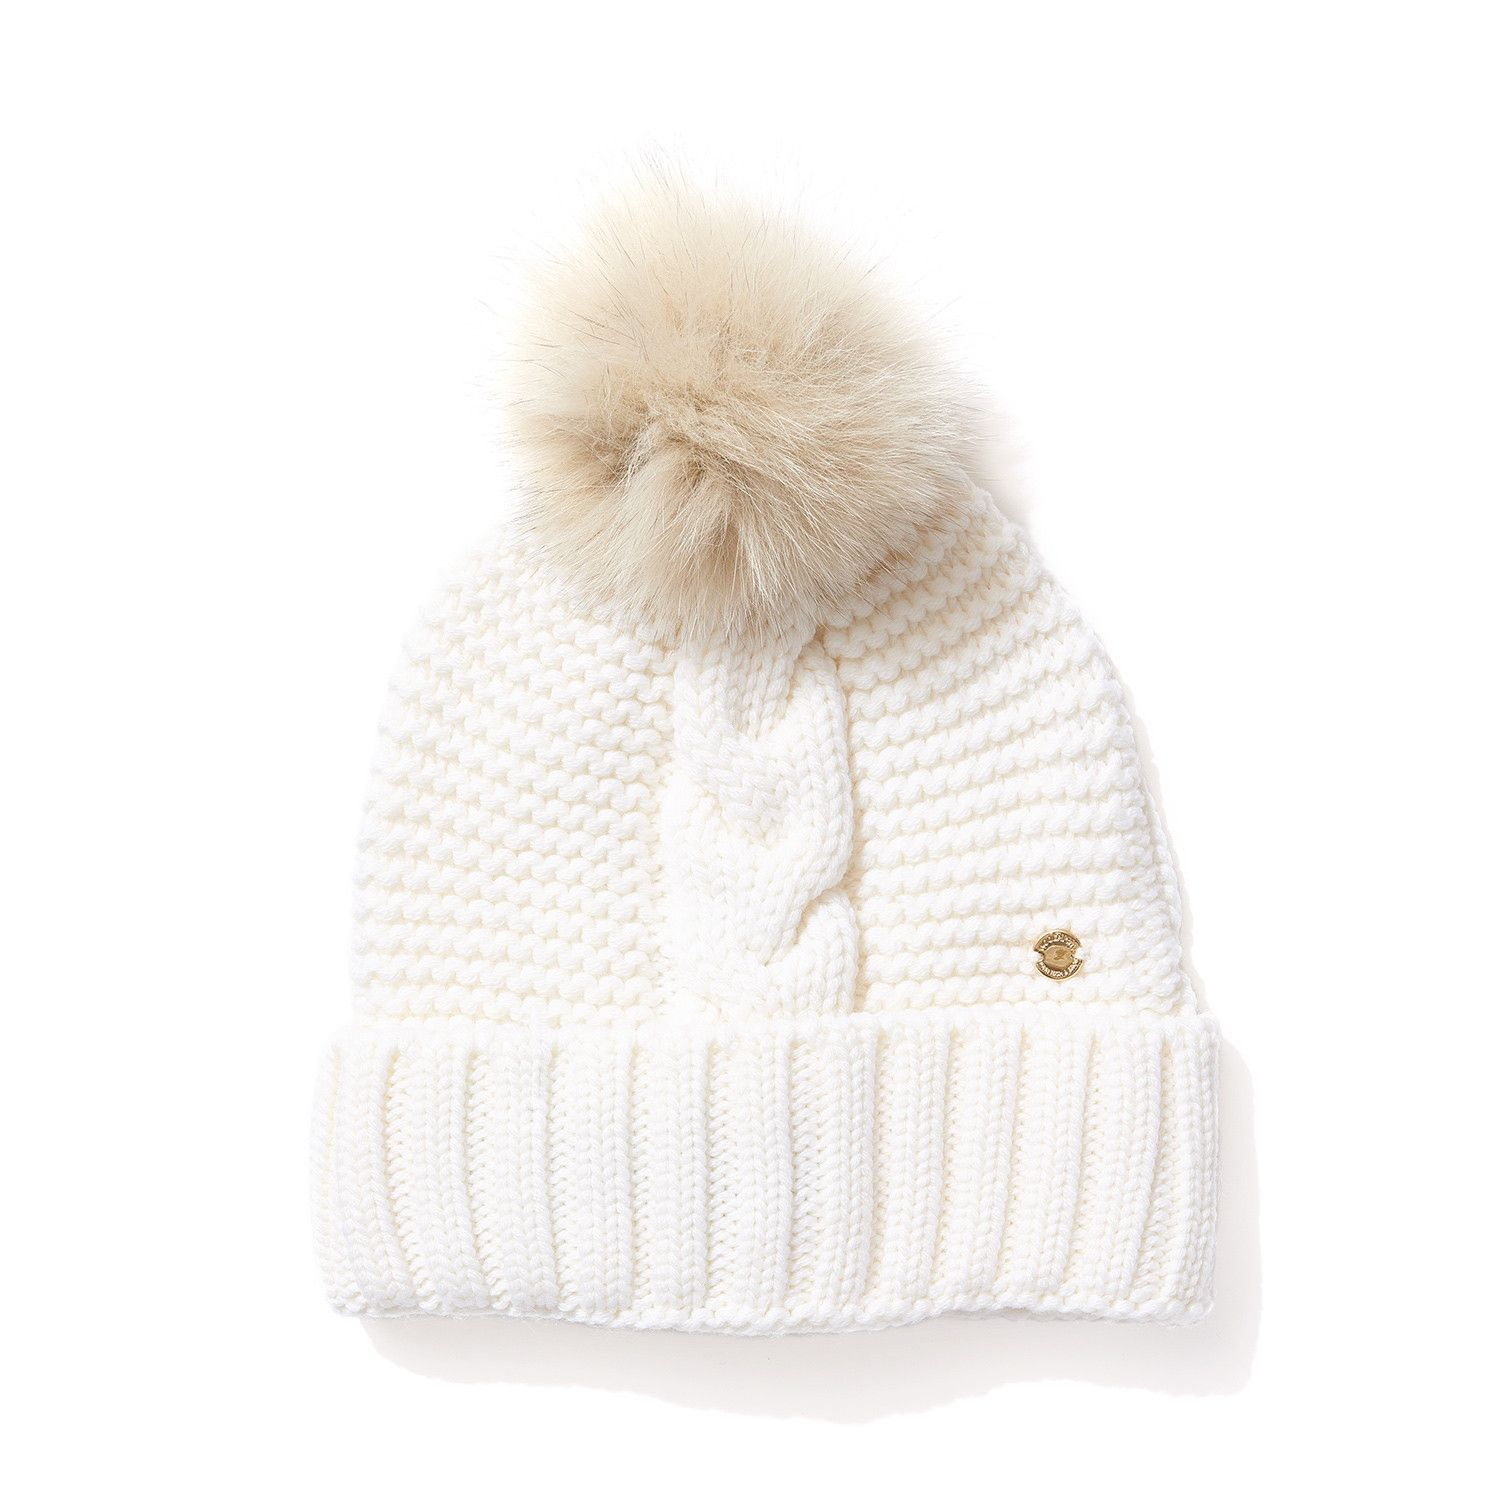 995058b5305018 Woolrich Hat - Cream | Products | Pinterest | Hats, Fashion outfits ...